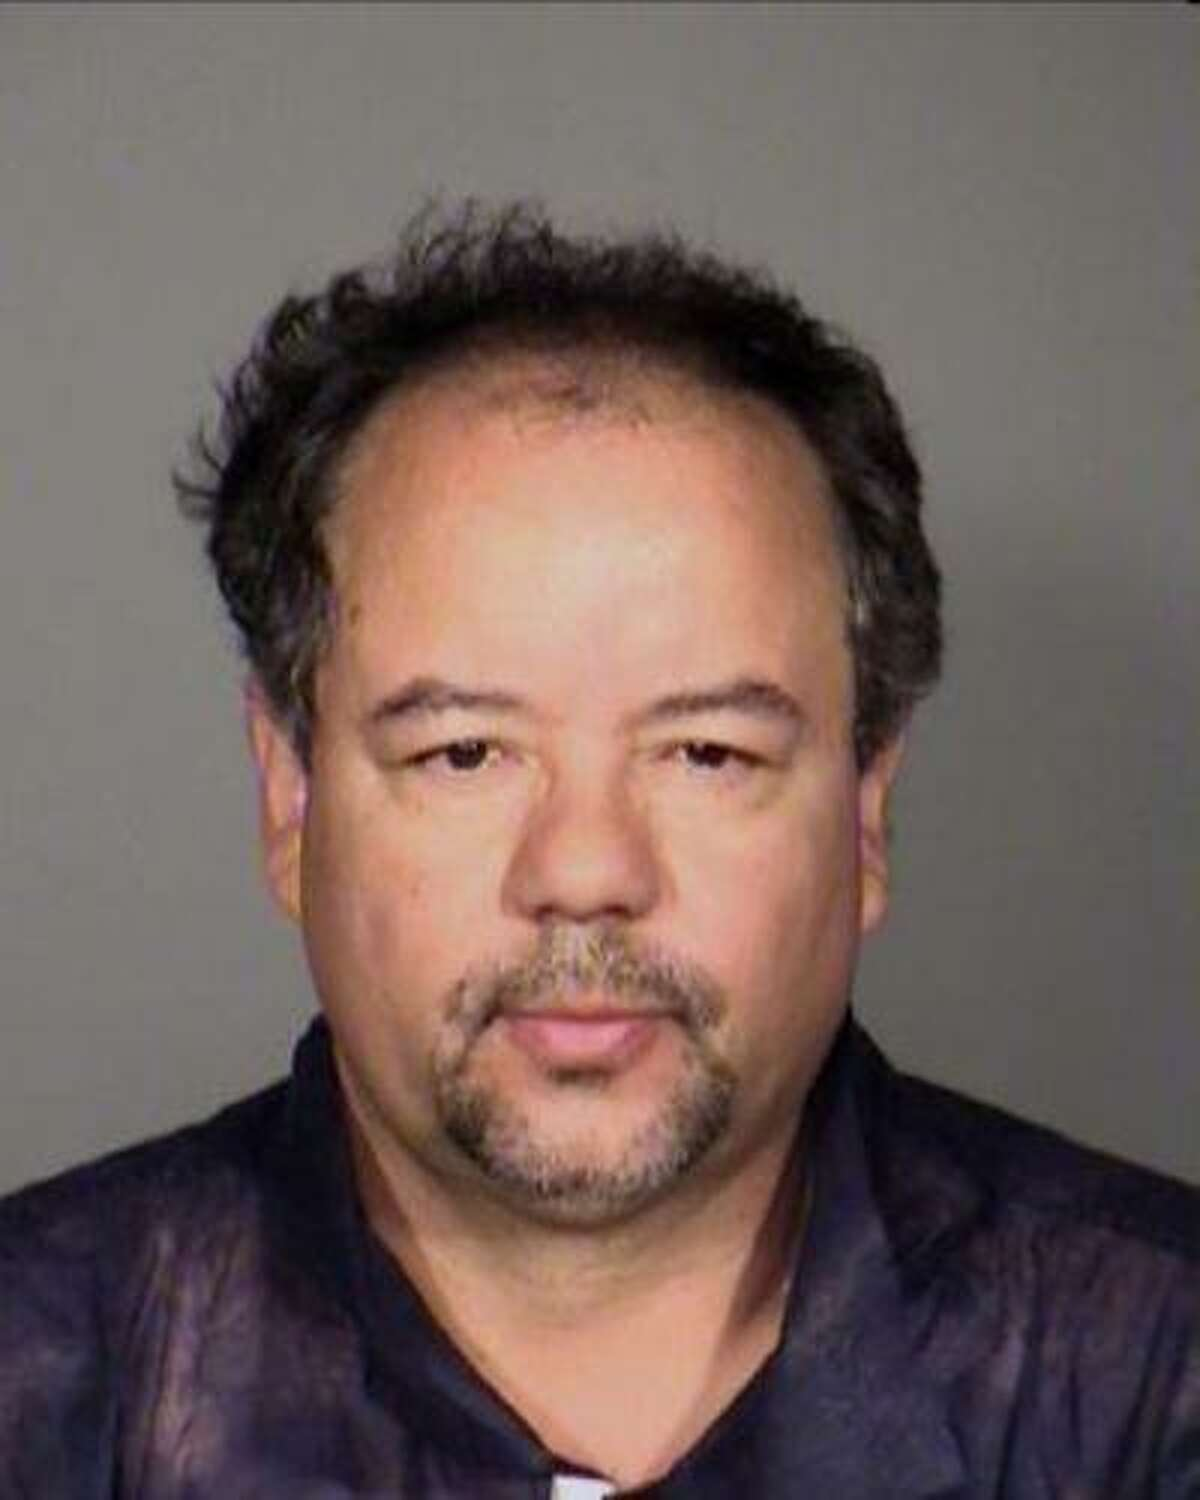 Ariel Castro is shown in Cleveland in this May 7, 2013, booking photo provided by the Cleveland Police Department. Castro was arrested in connection with the abduction of three Cleveland women. Cleveland Police Dept/Handout via Reuters